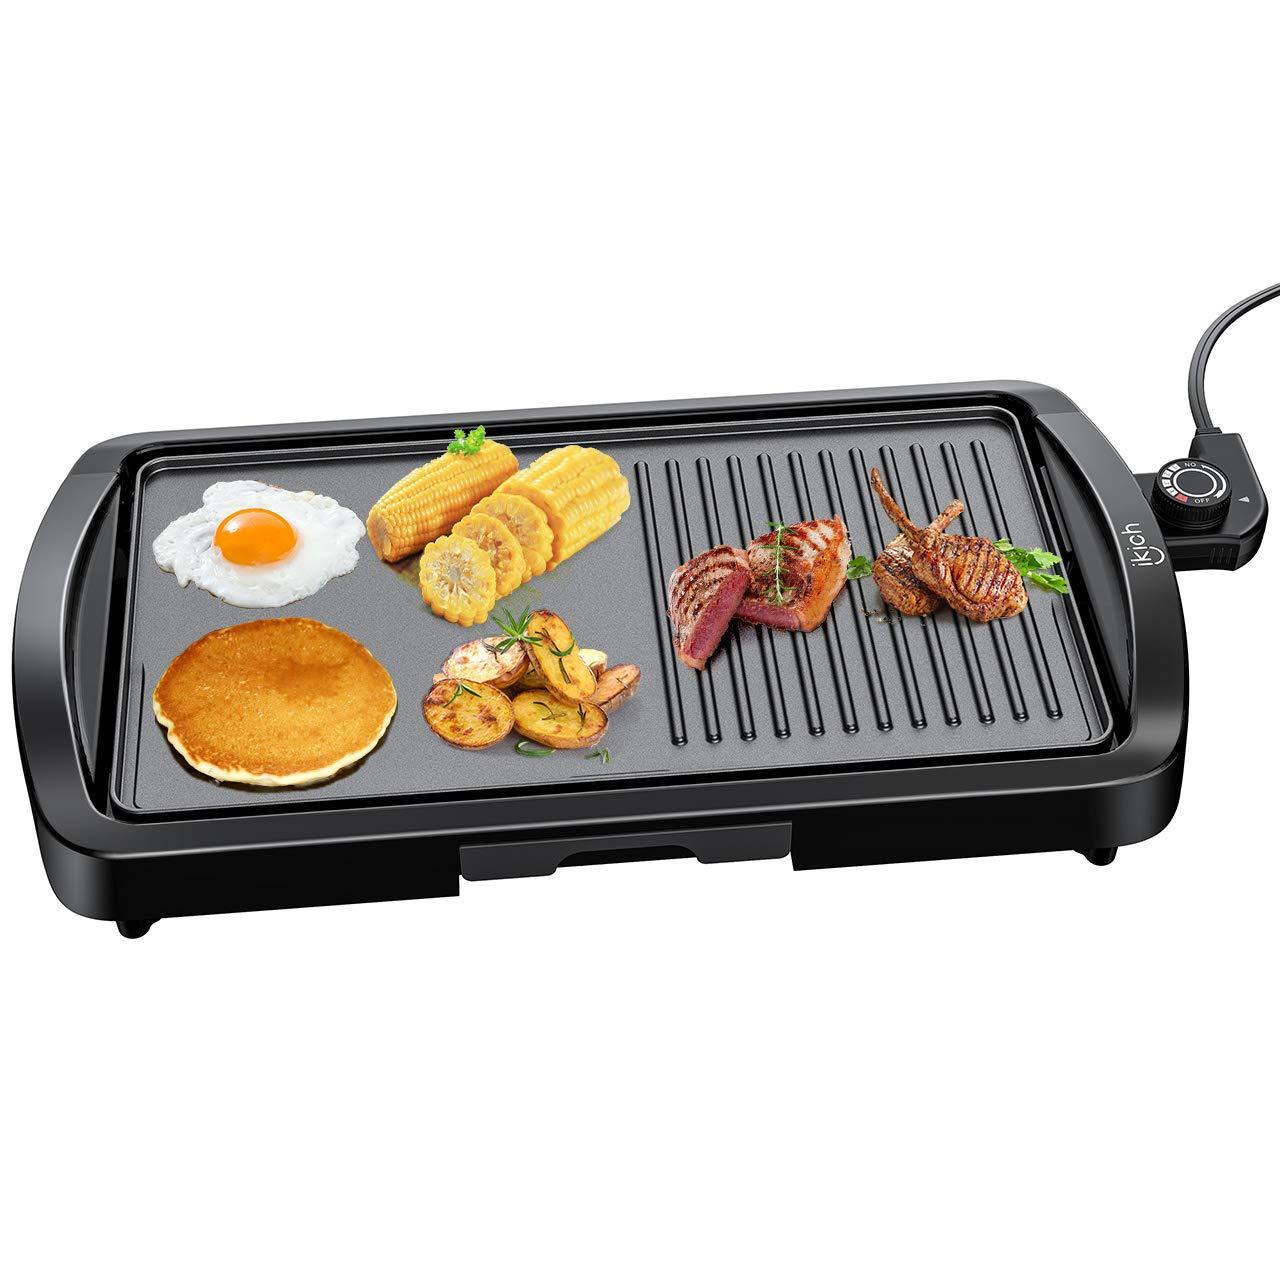 Electric Griddle, IKICH 2-in-1 Grill Griddle, 1600W Smokeless Nonstick Indoor Grill with Drip Tray, Family-sized Pancake grill for Indoor, Outdoor, Camping, Even Heating, Cool-touch Handle by IKICH